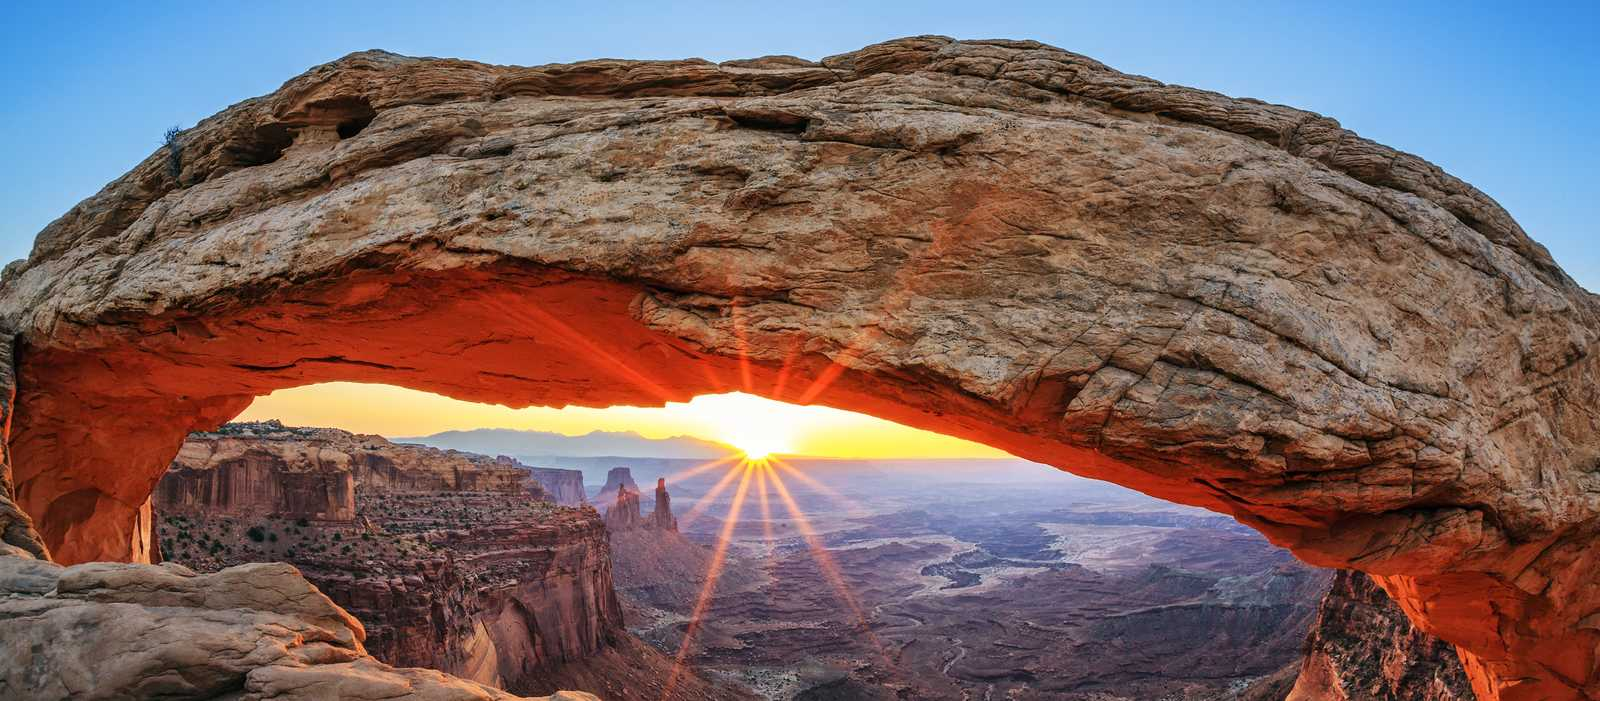 Mesa Arch in Canyonlands National Park, Utah